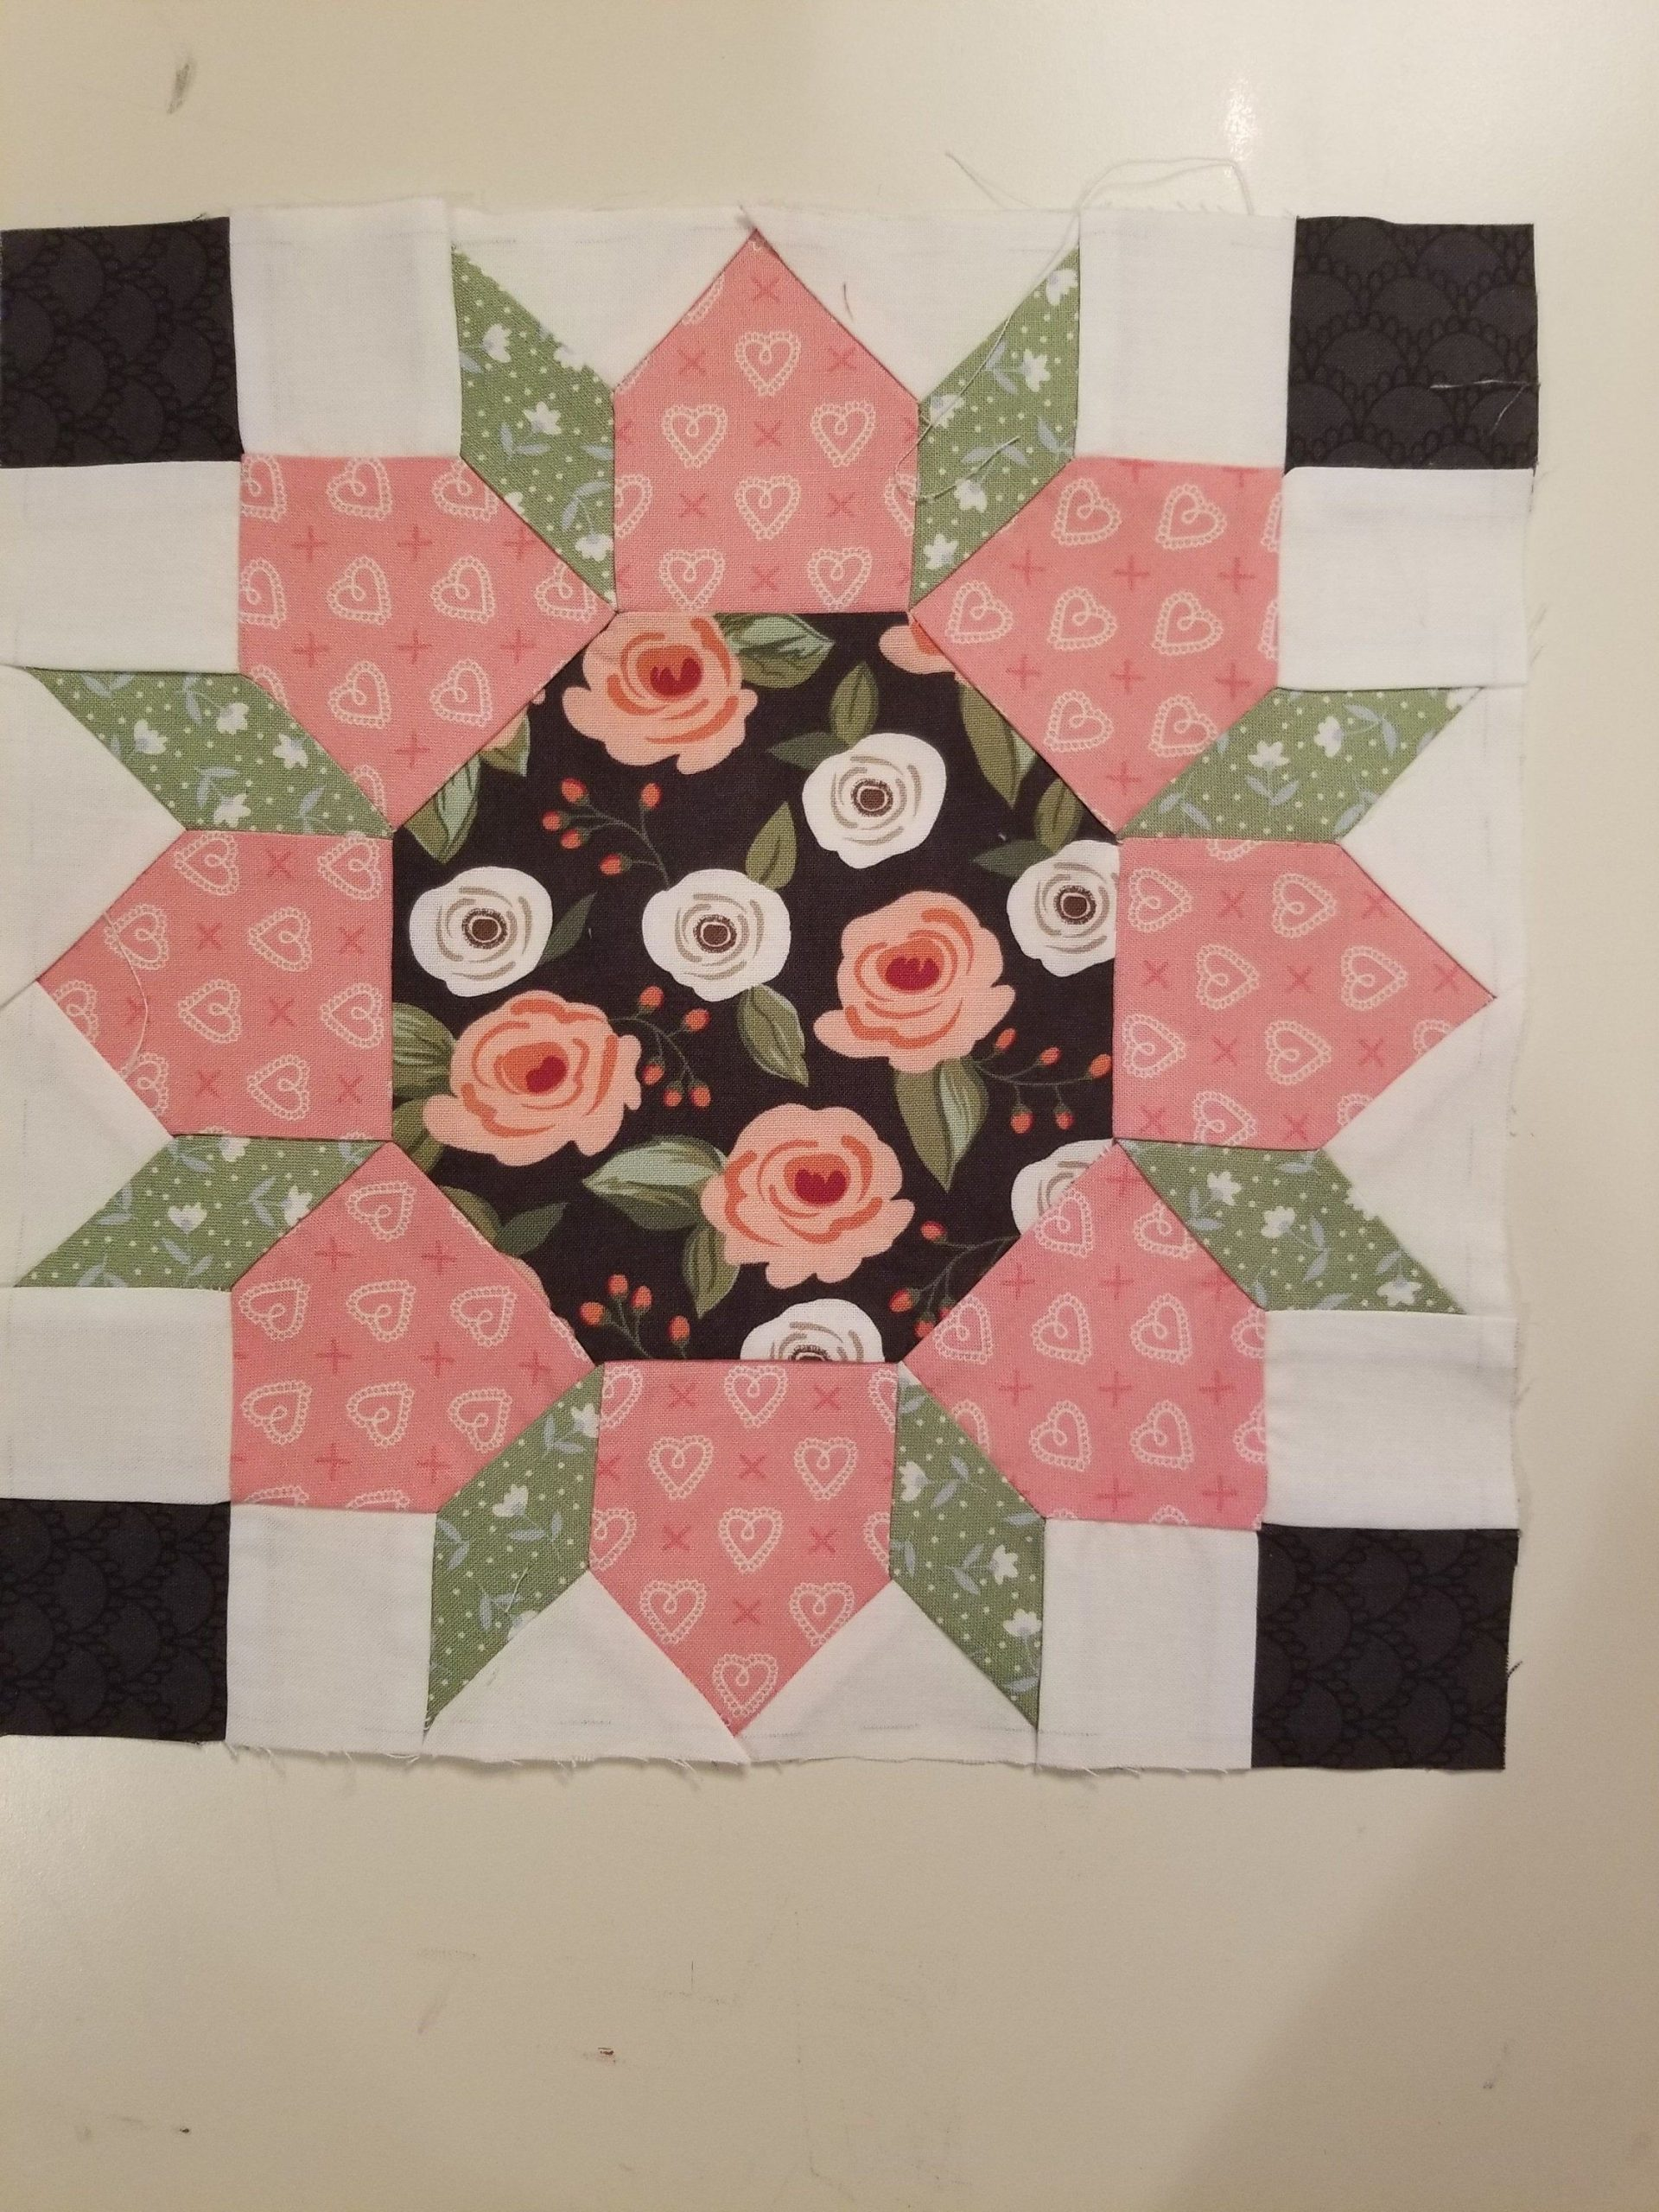 Super 8 Octagon Quilt pattern 1 Etsy in 2020